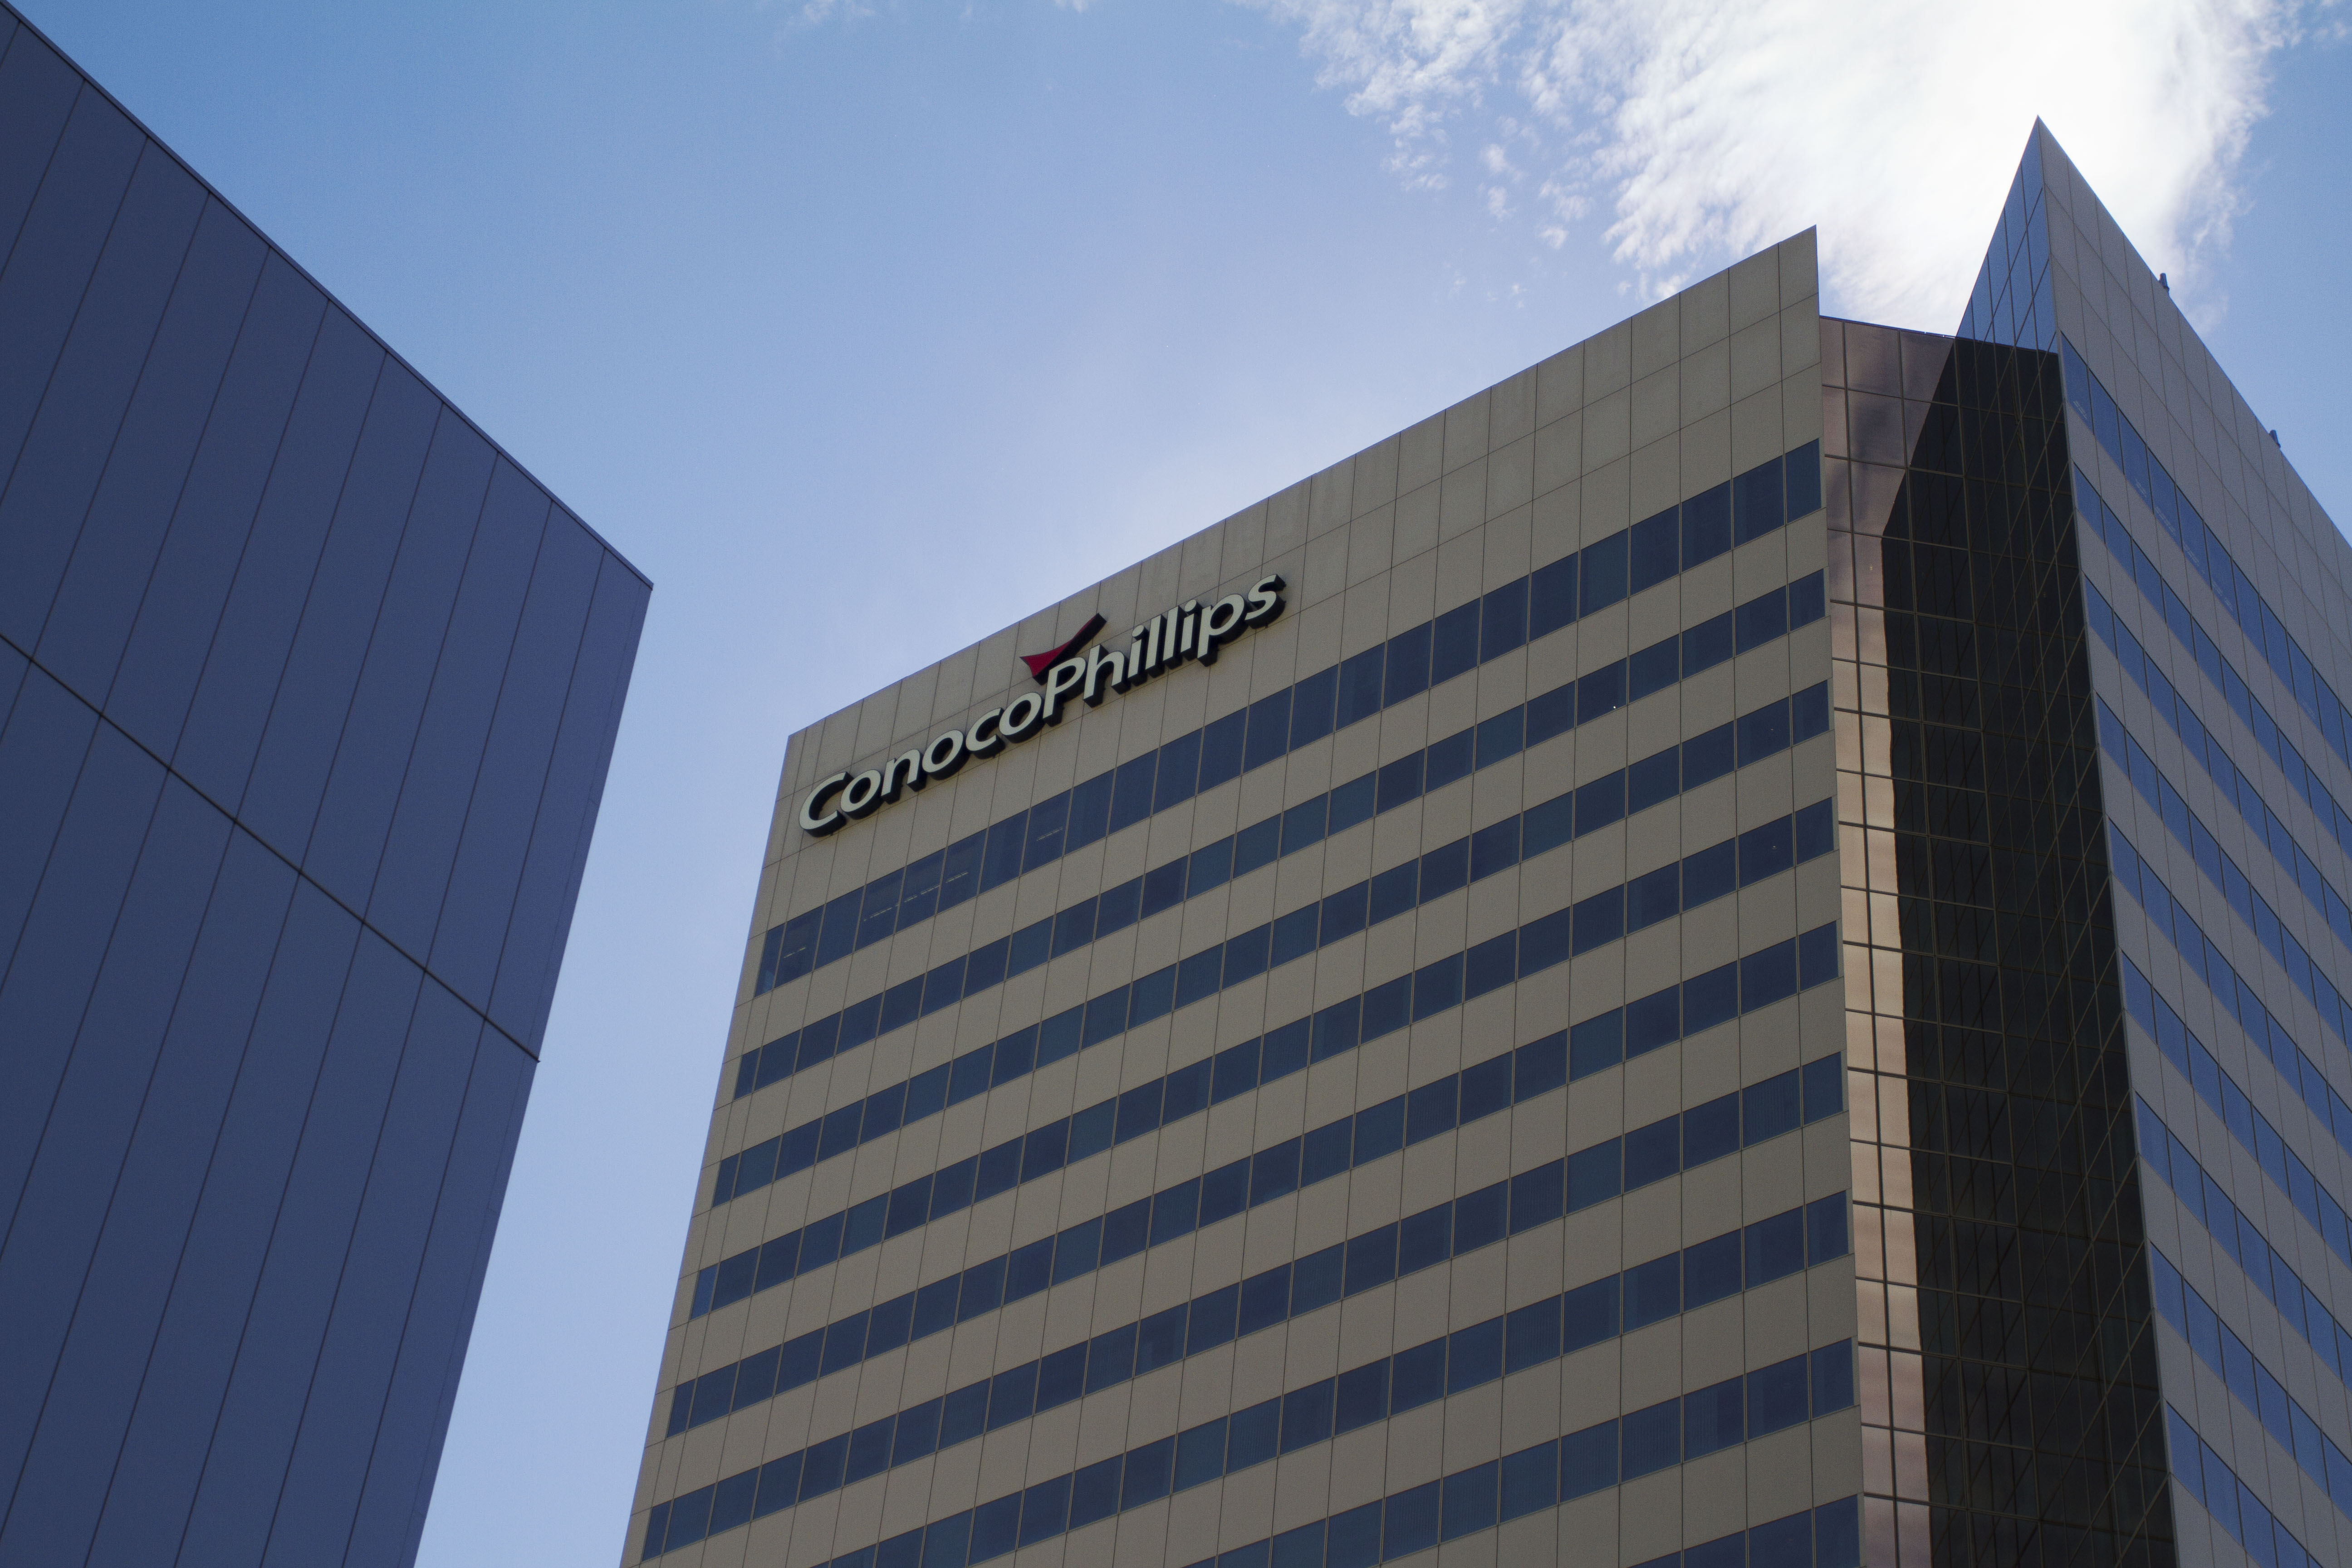 ConocoPhillips earned $233M in Alaska in 2016, a global highlight for the company